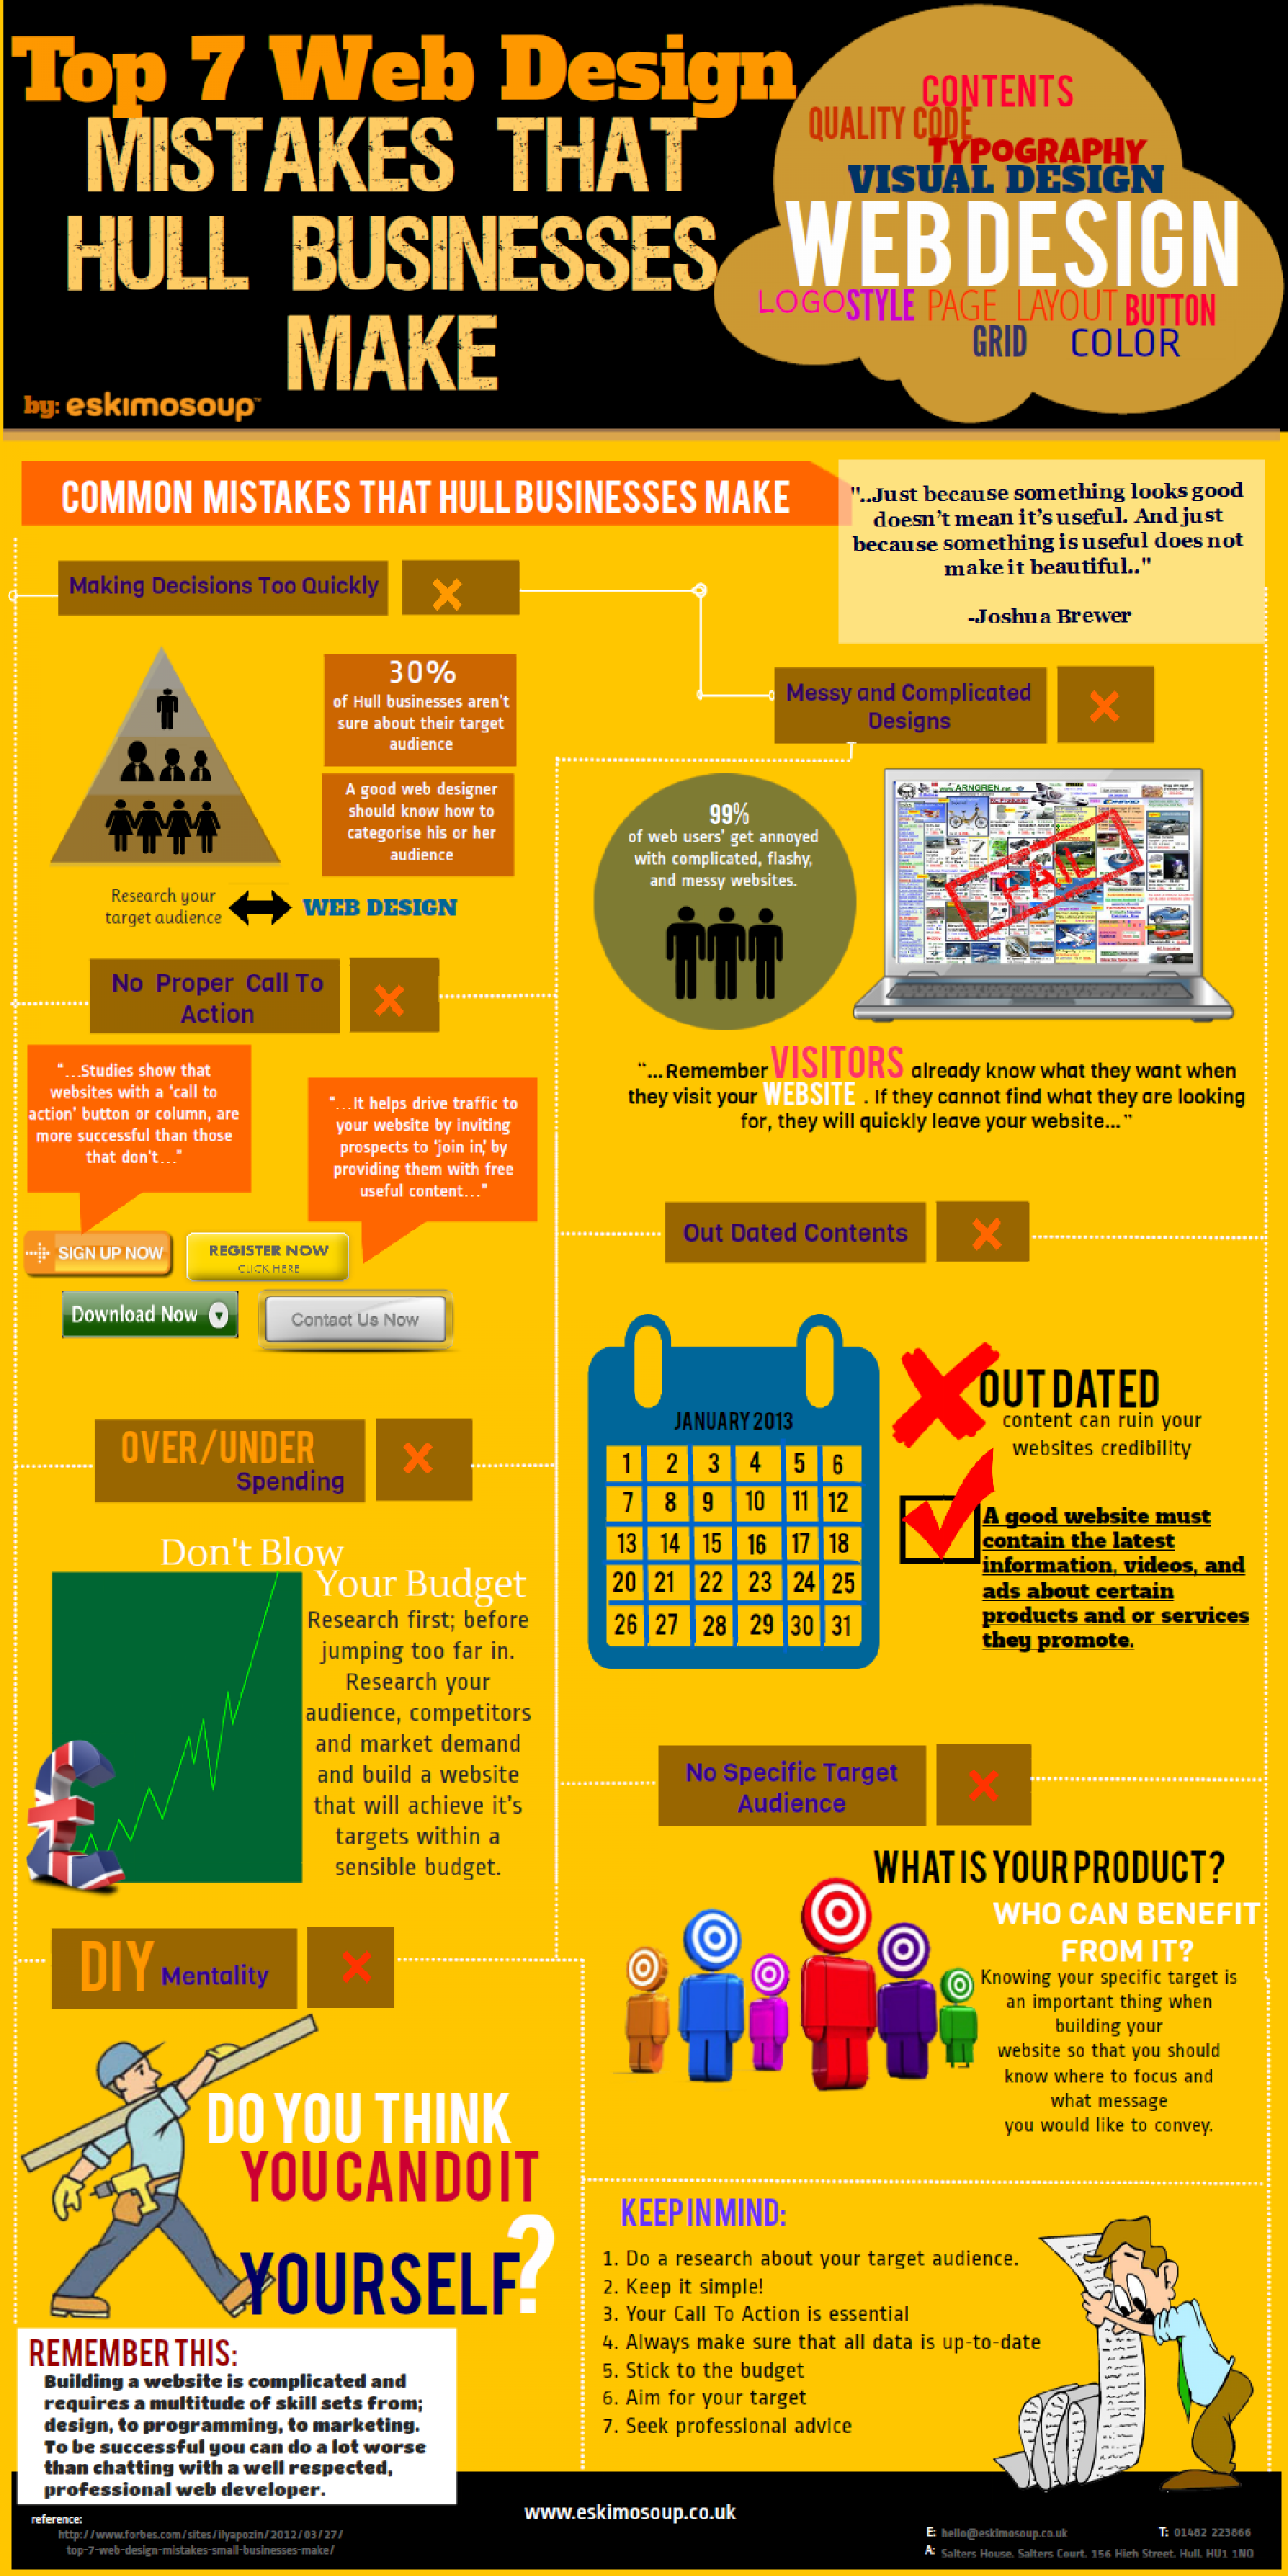 Top 7 Web Design Mistakes That Hull Businesses Make Infographic